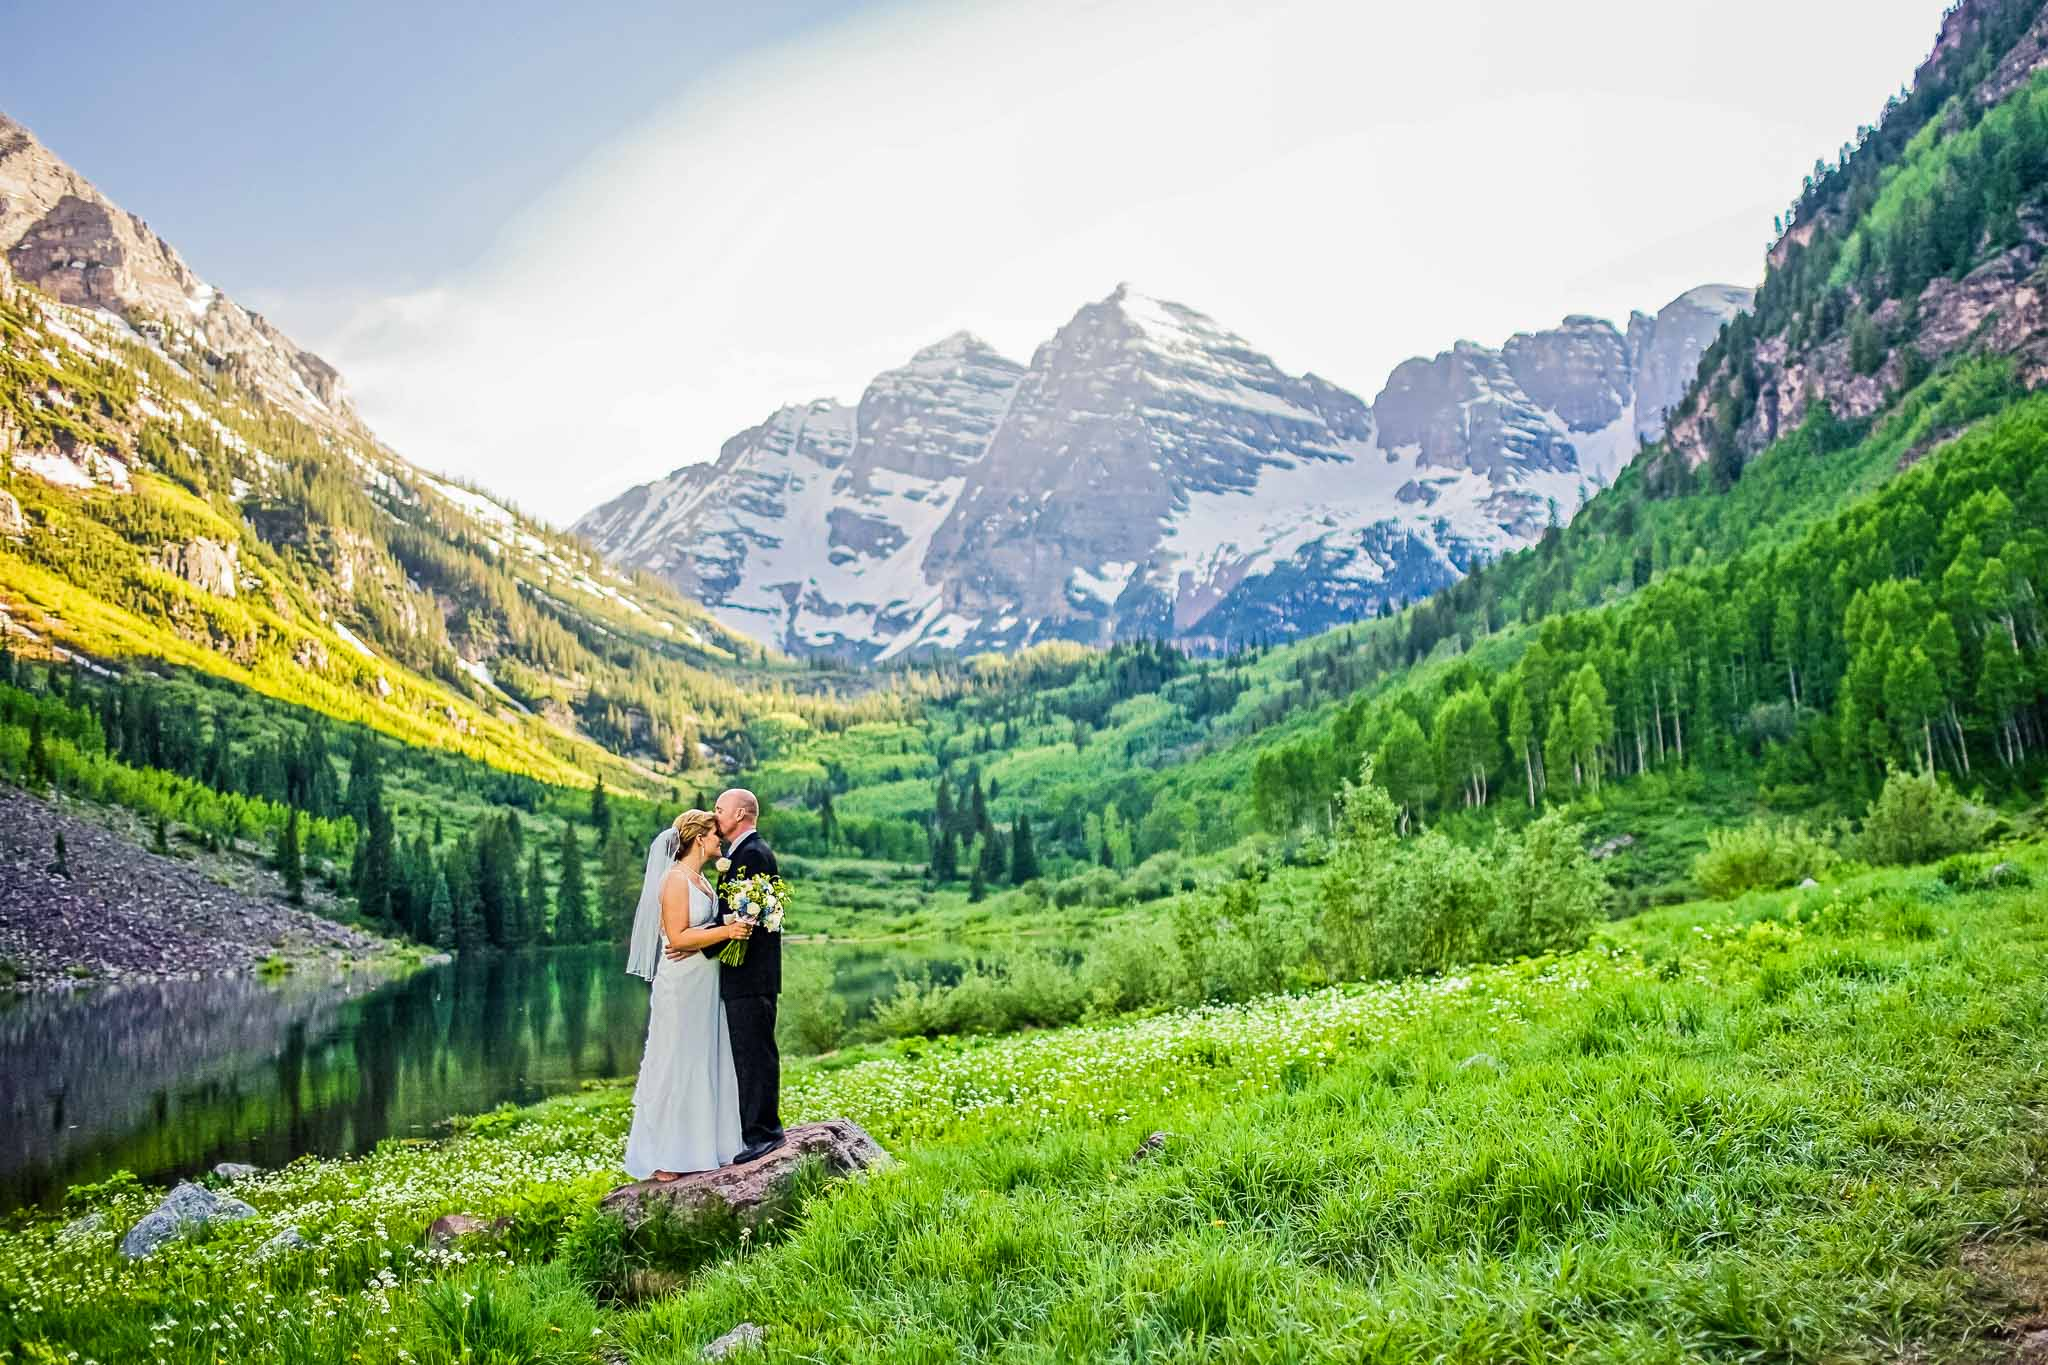 Bride and groom in front of the Maroon Bells